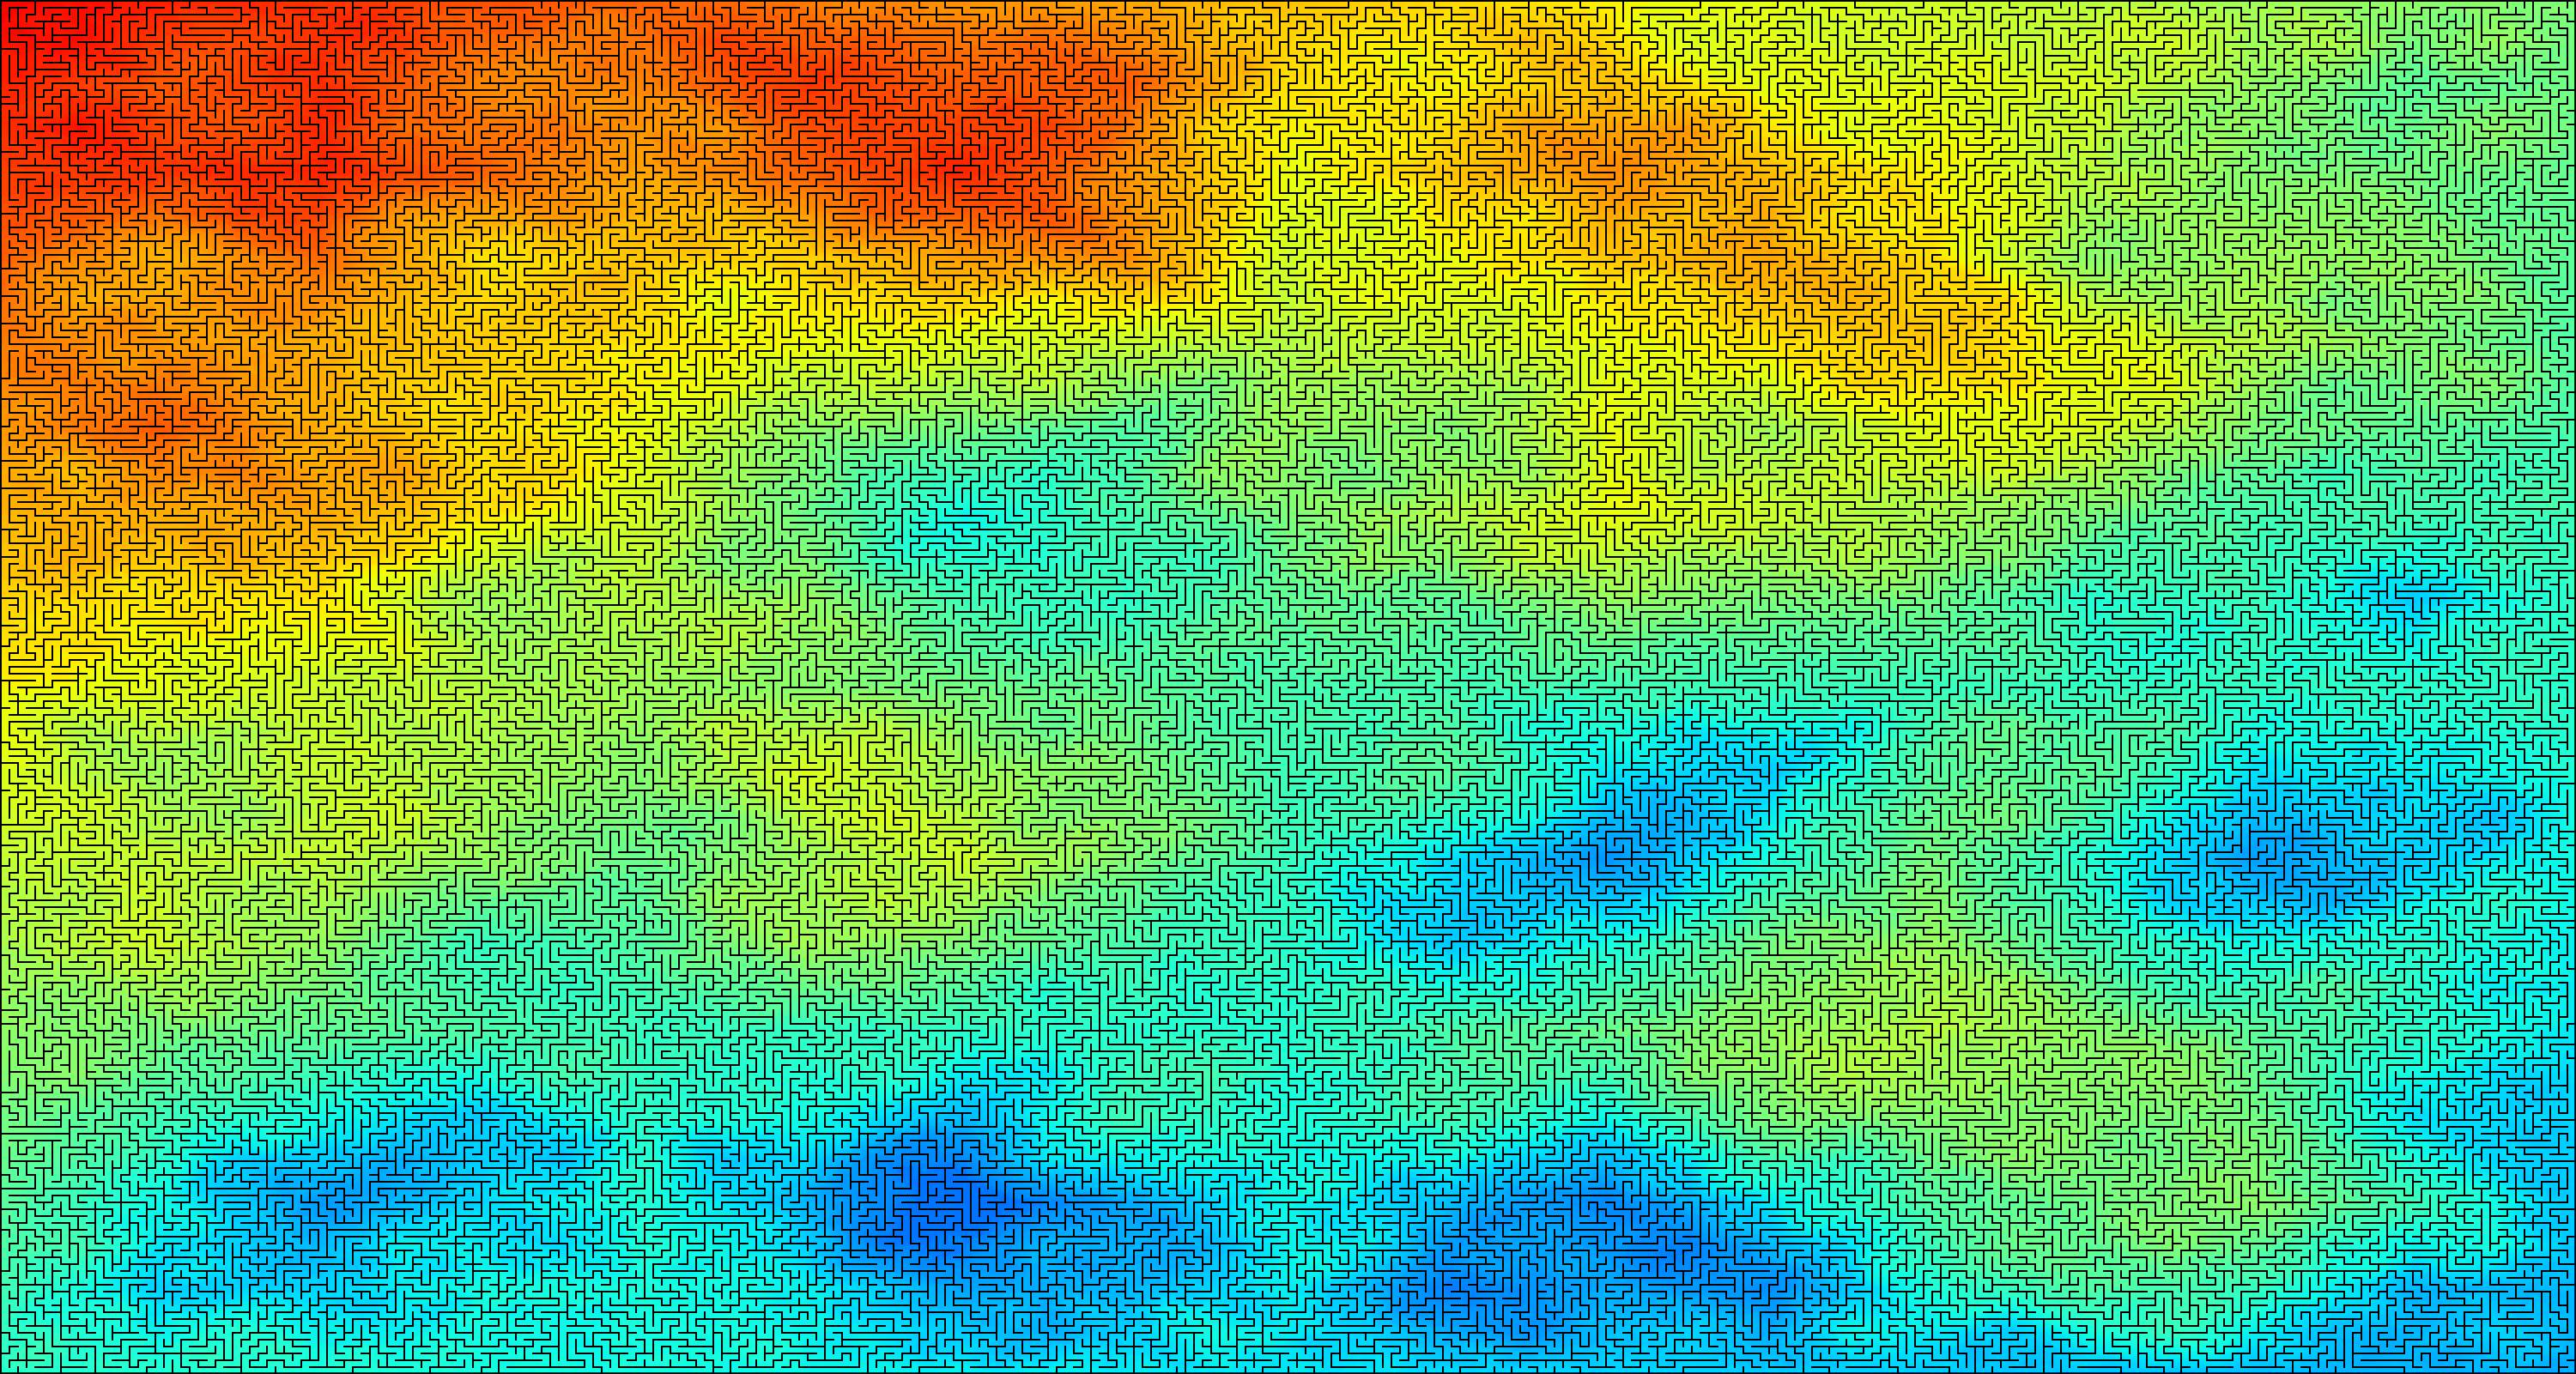 Implementation Of Line Drawing Algorithm In C : C bitmap library by arash partow ::.